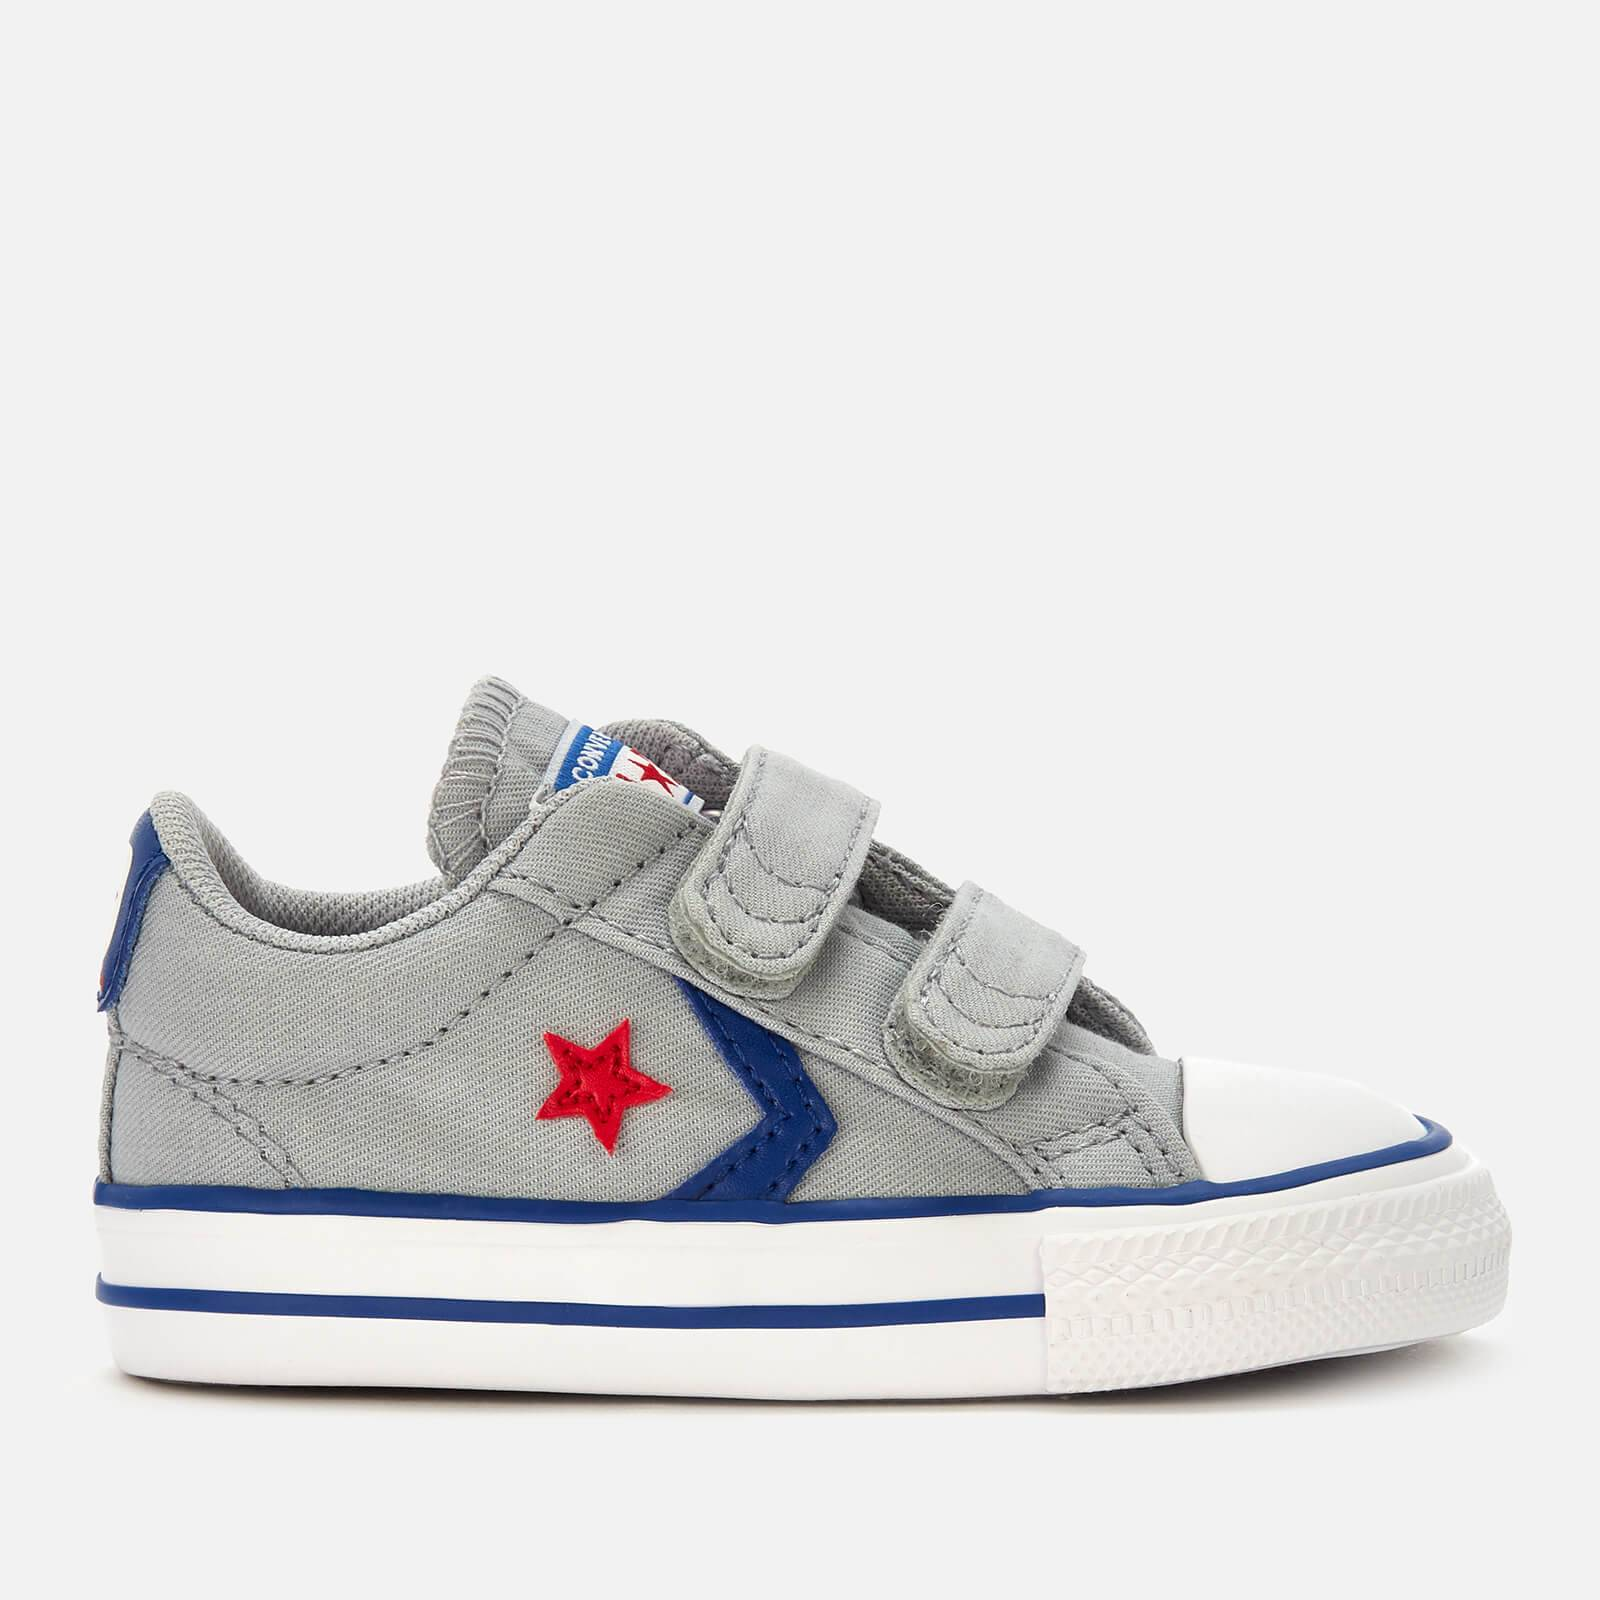 Converse Toddlers' Star Player 2 Velcro Ox Trainers - Wolf Grey/Blue/Enamel Red - UK 3 Toddler